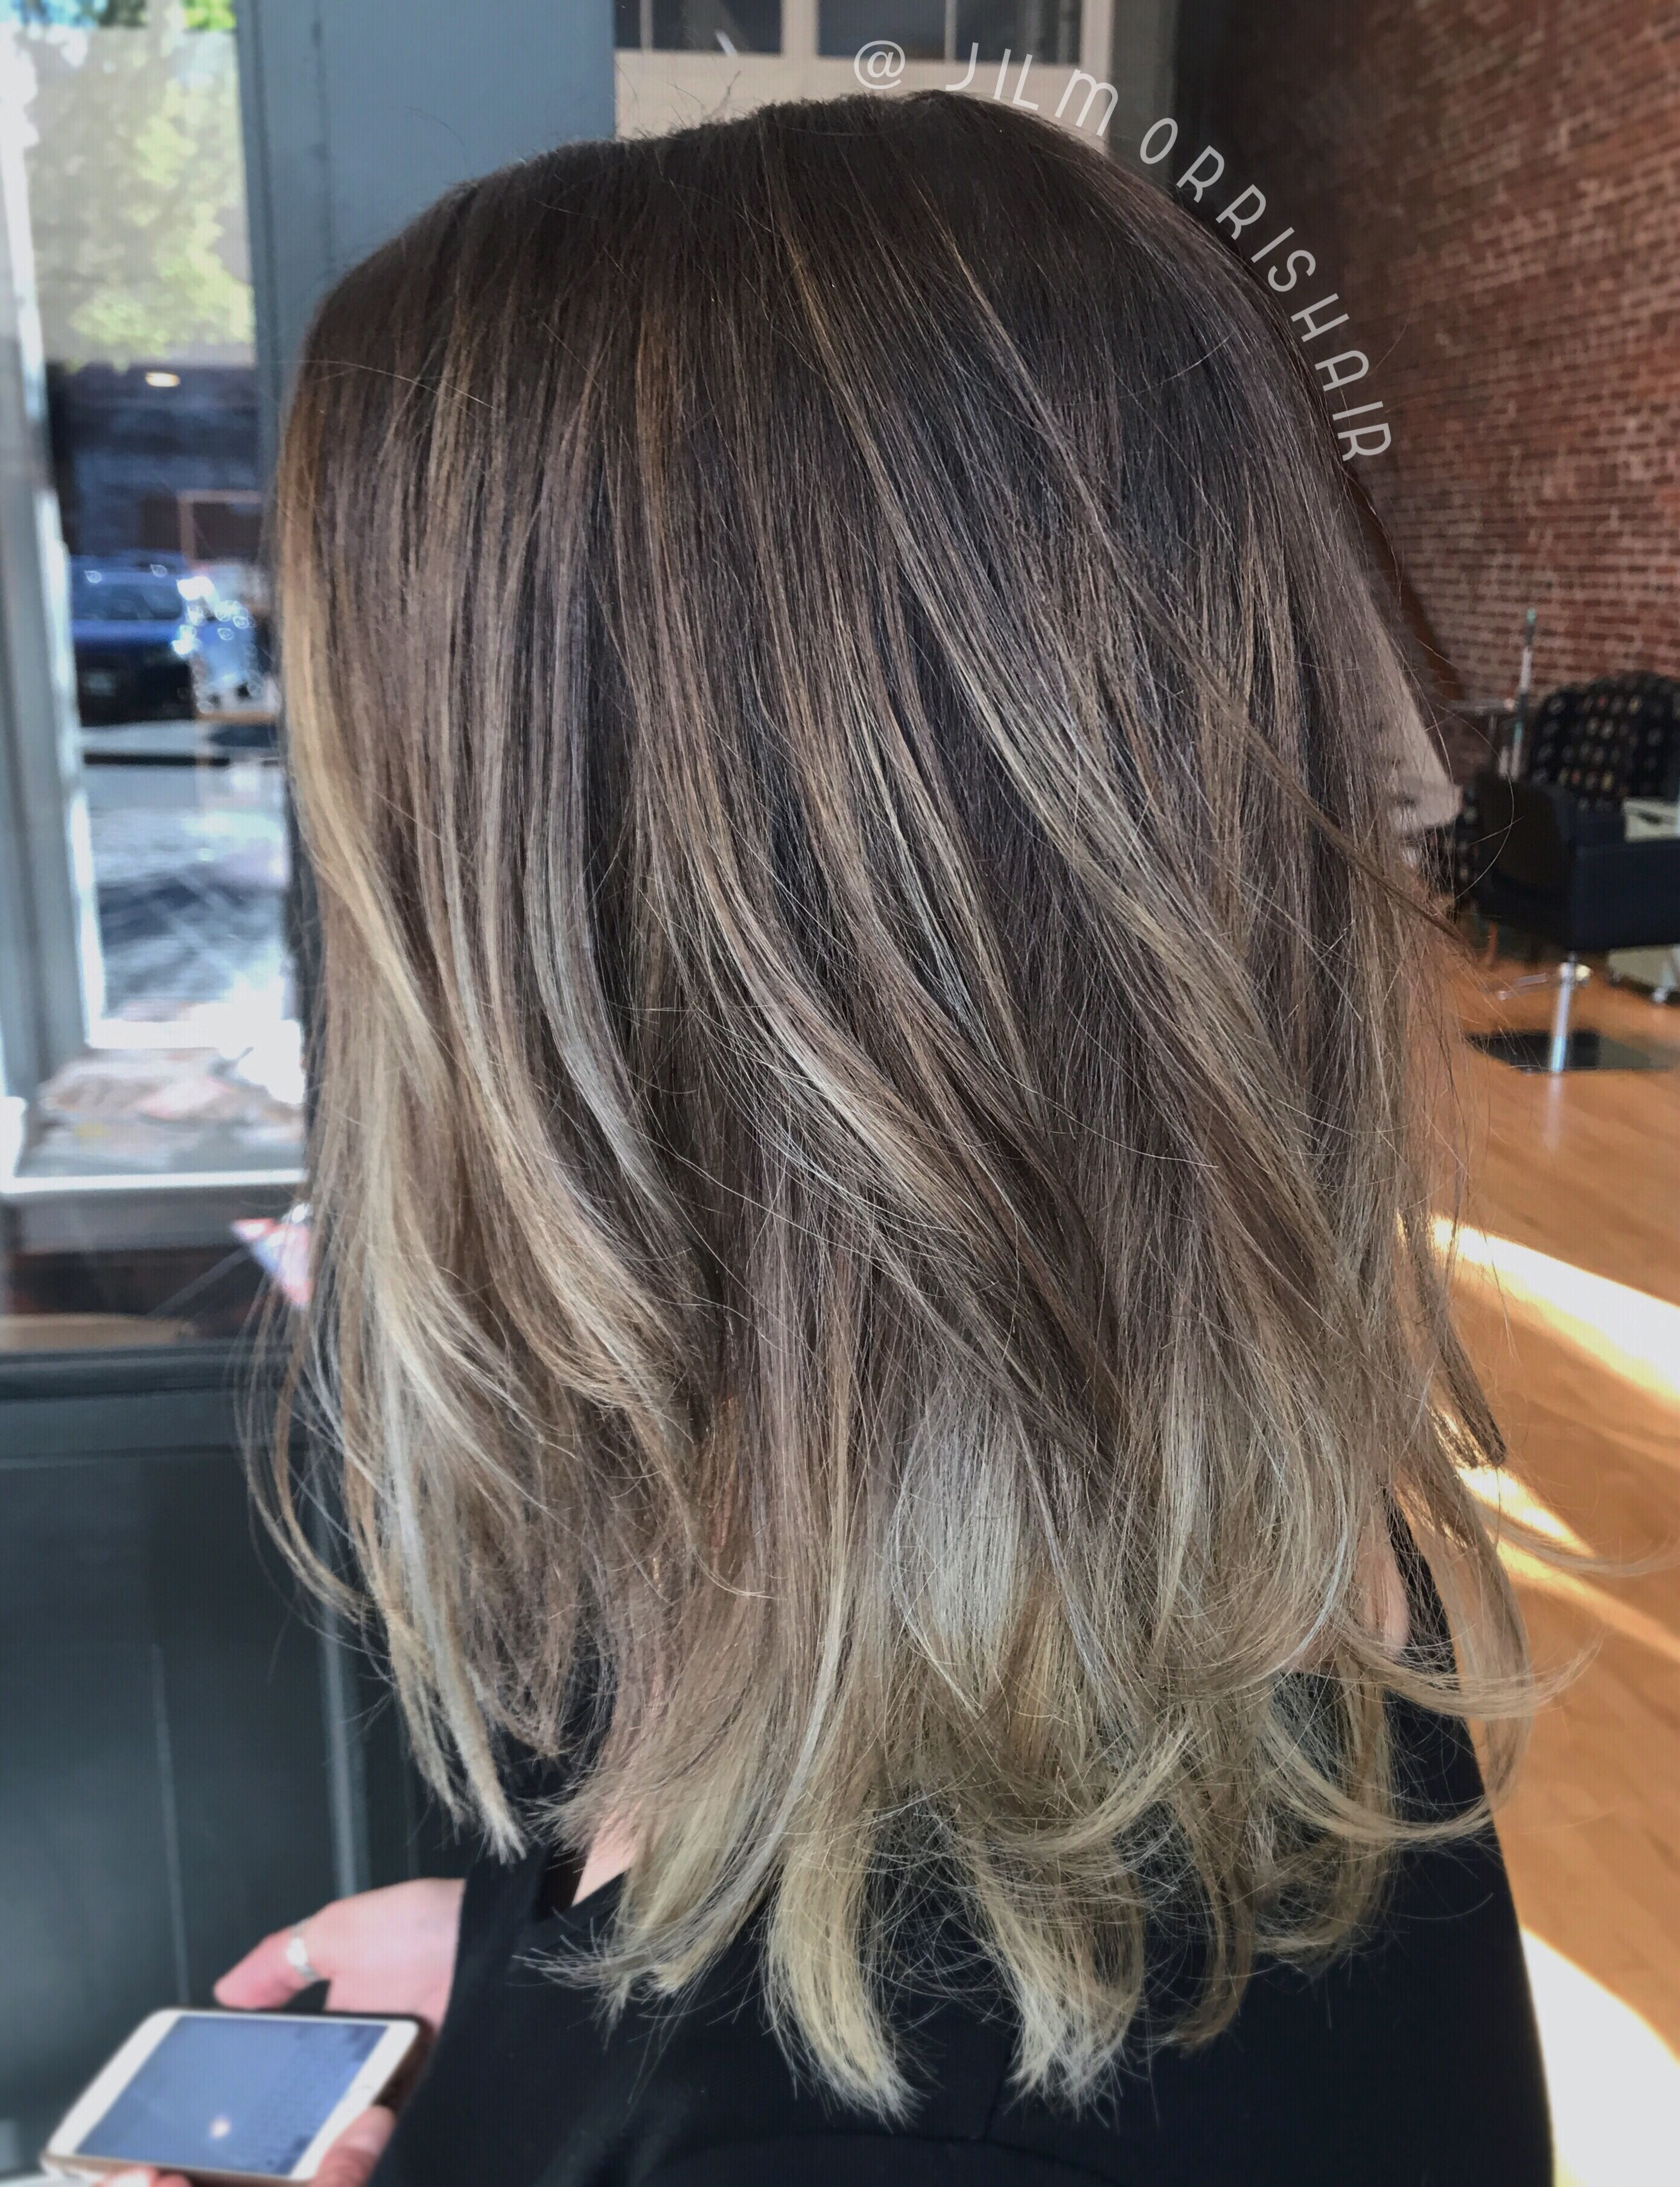 Dark ash blonde sombré balayage highlights with rooty lowlights